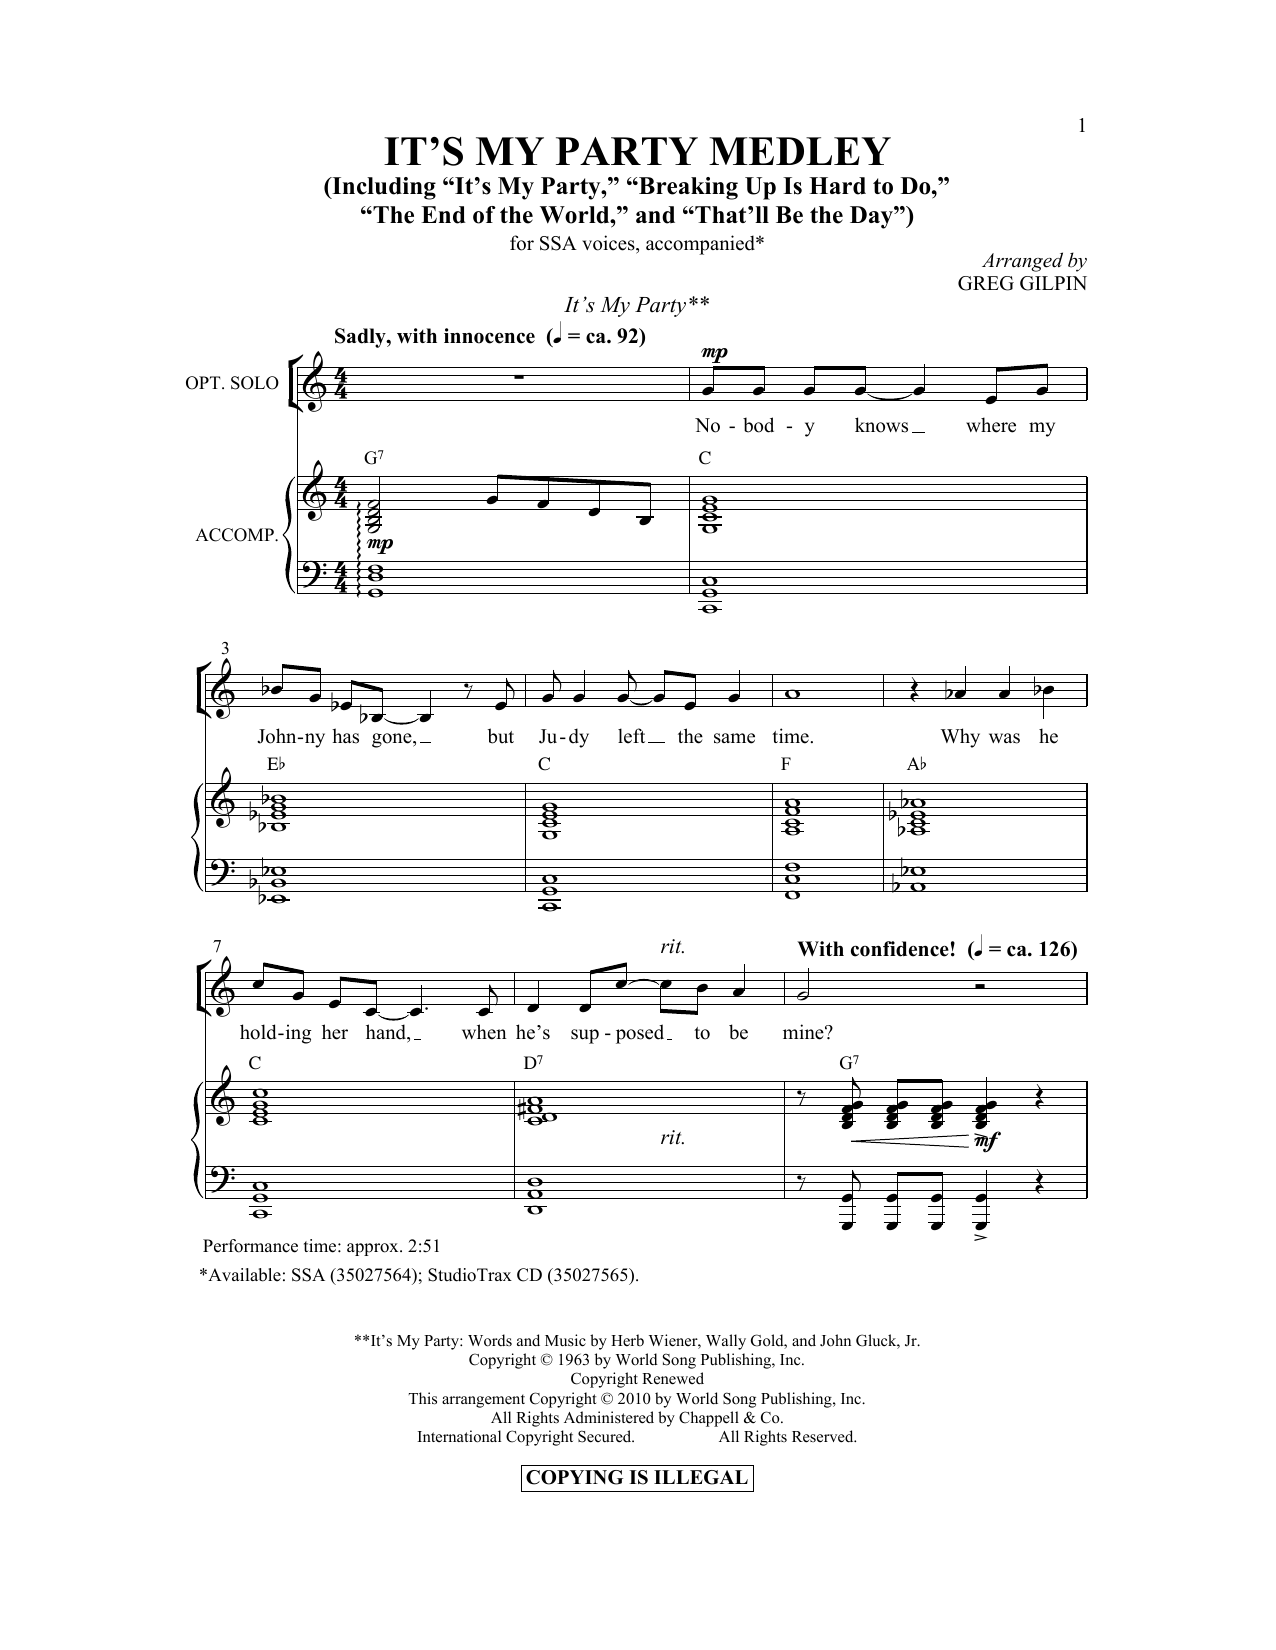 It's My Party Medley Sheet Music